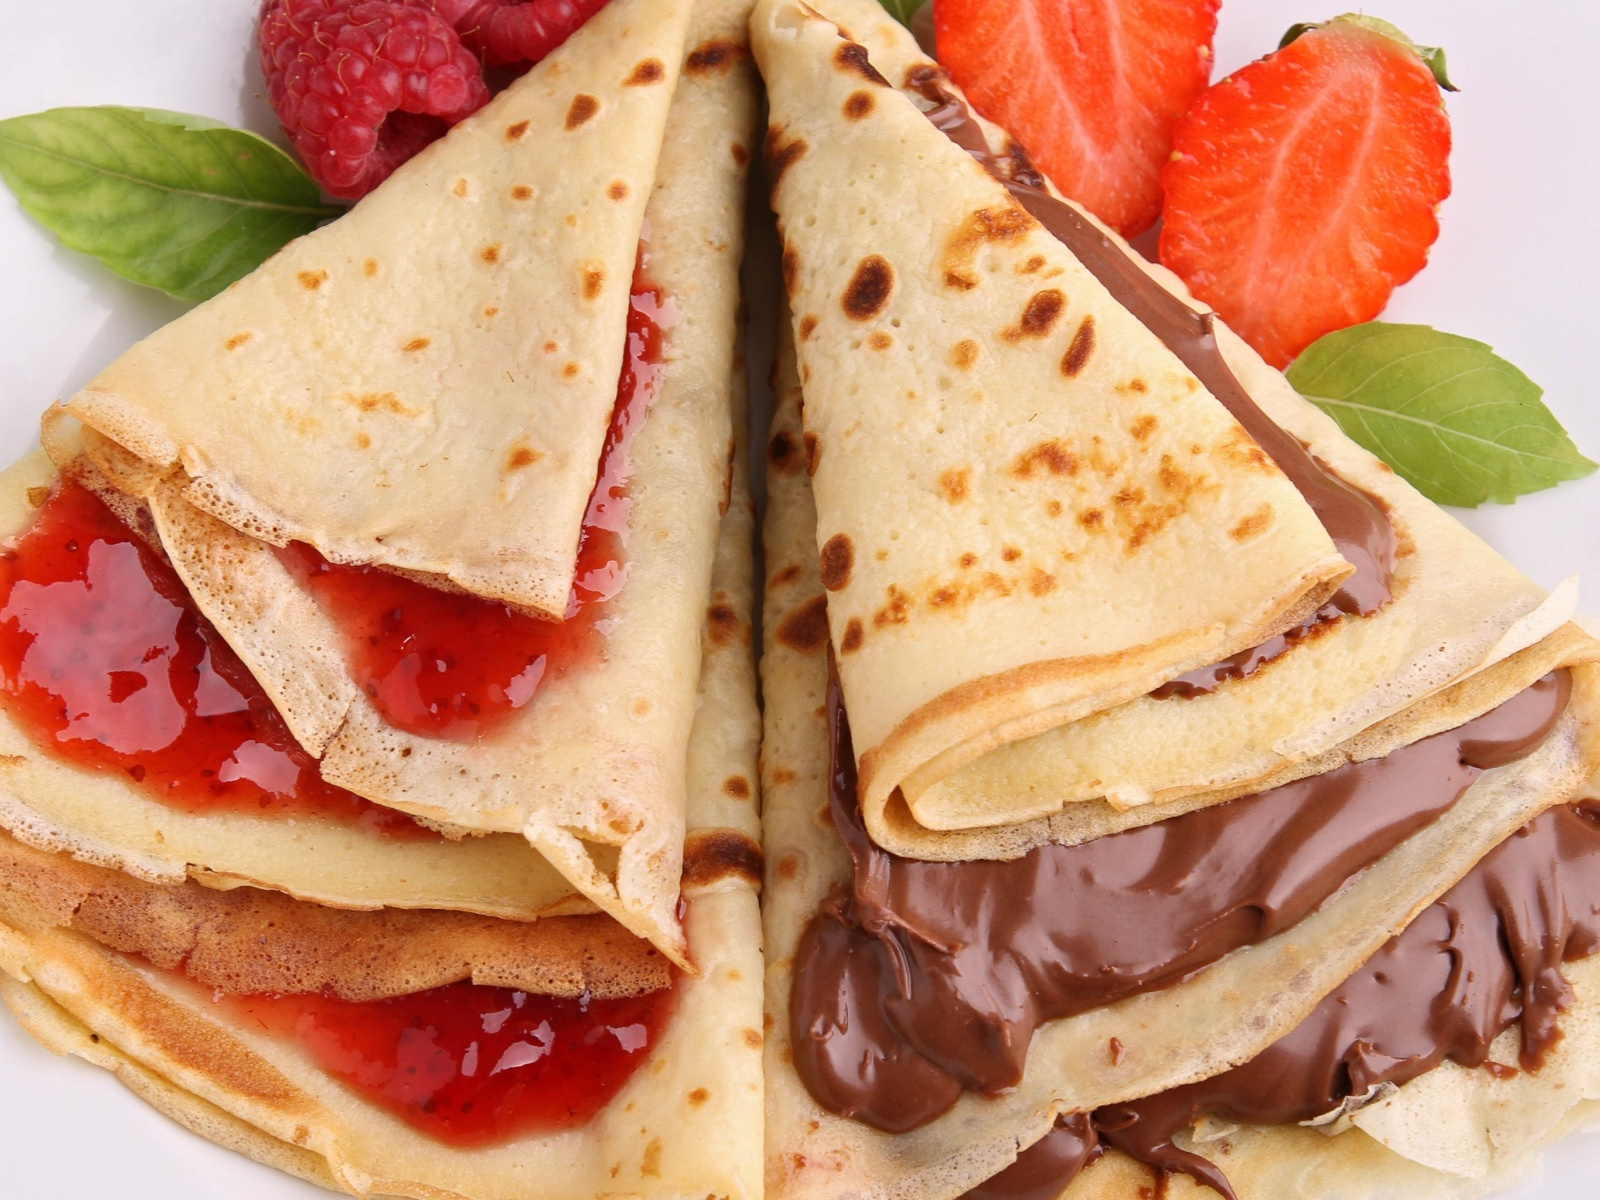 Das Most delicious pancakes with jam Wallpaper 1600x1200